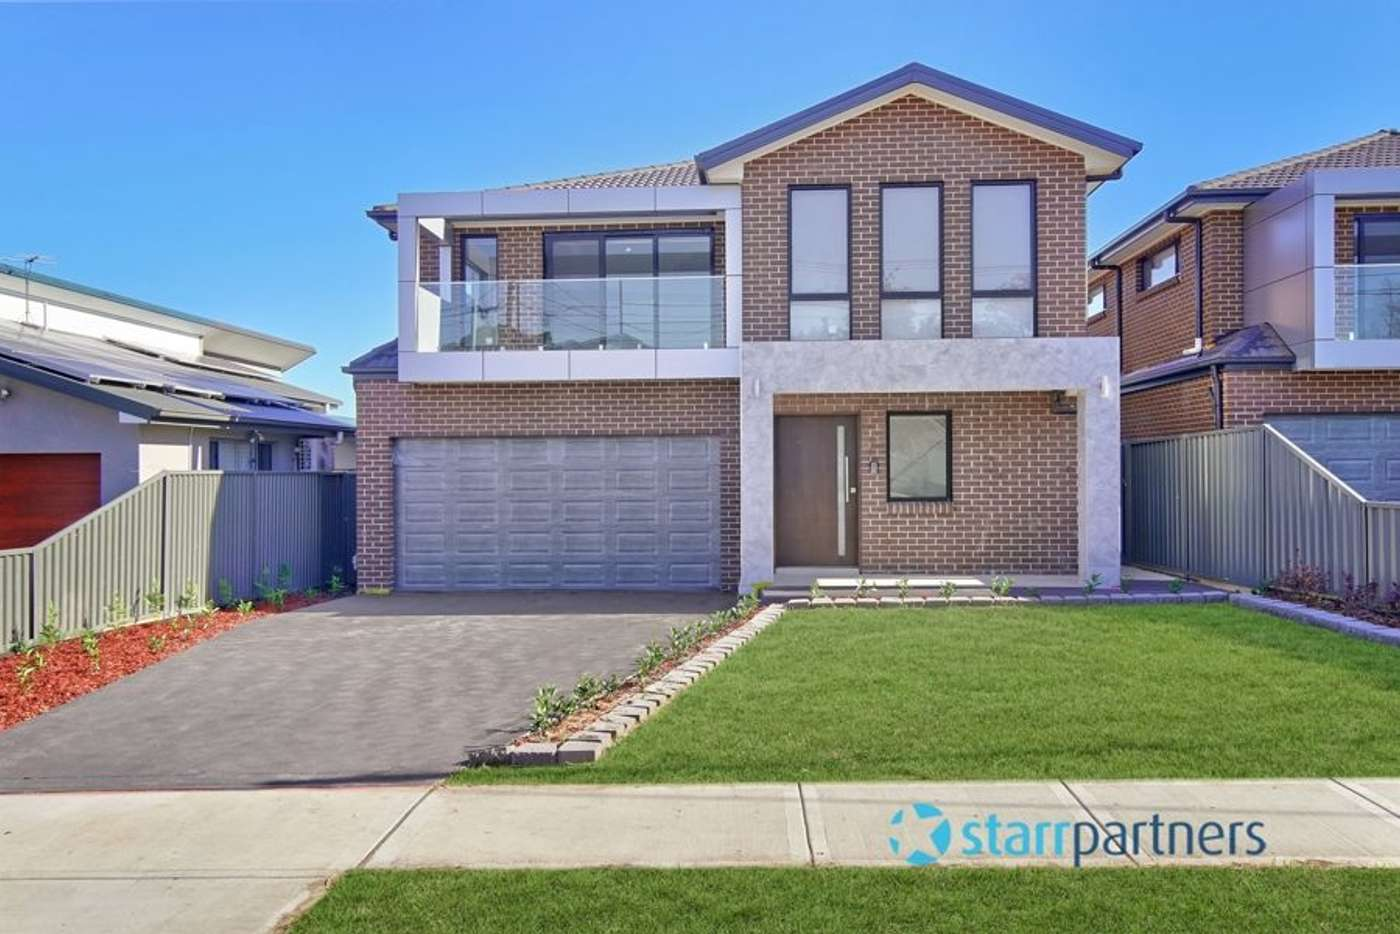 Main view of Homely house listing, 27 New Street, Auburn NSW 2144